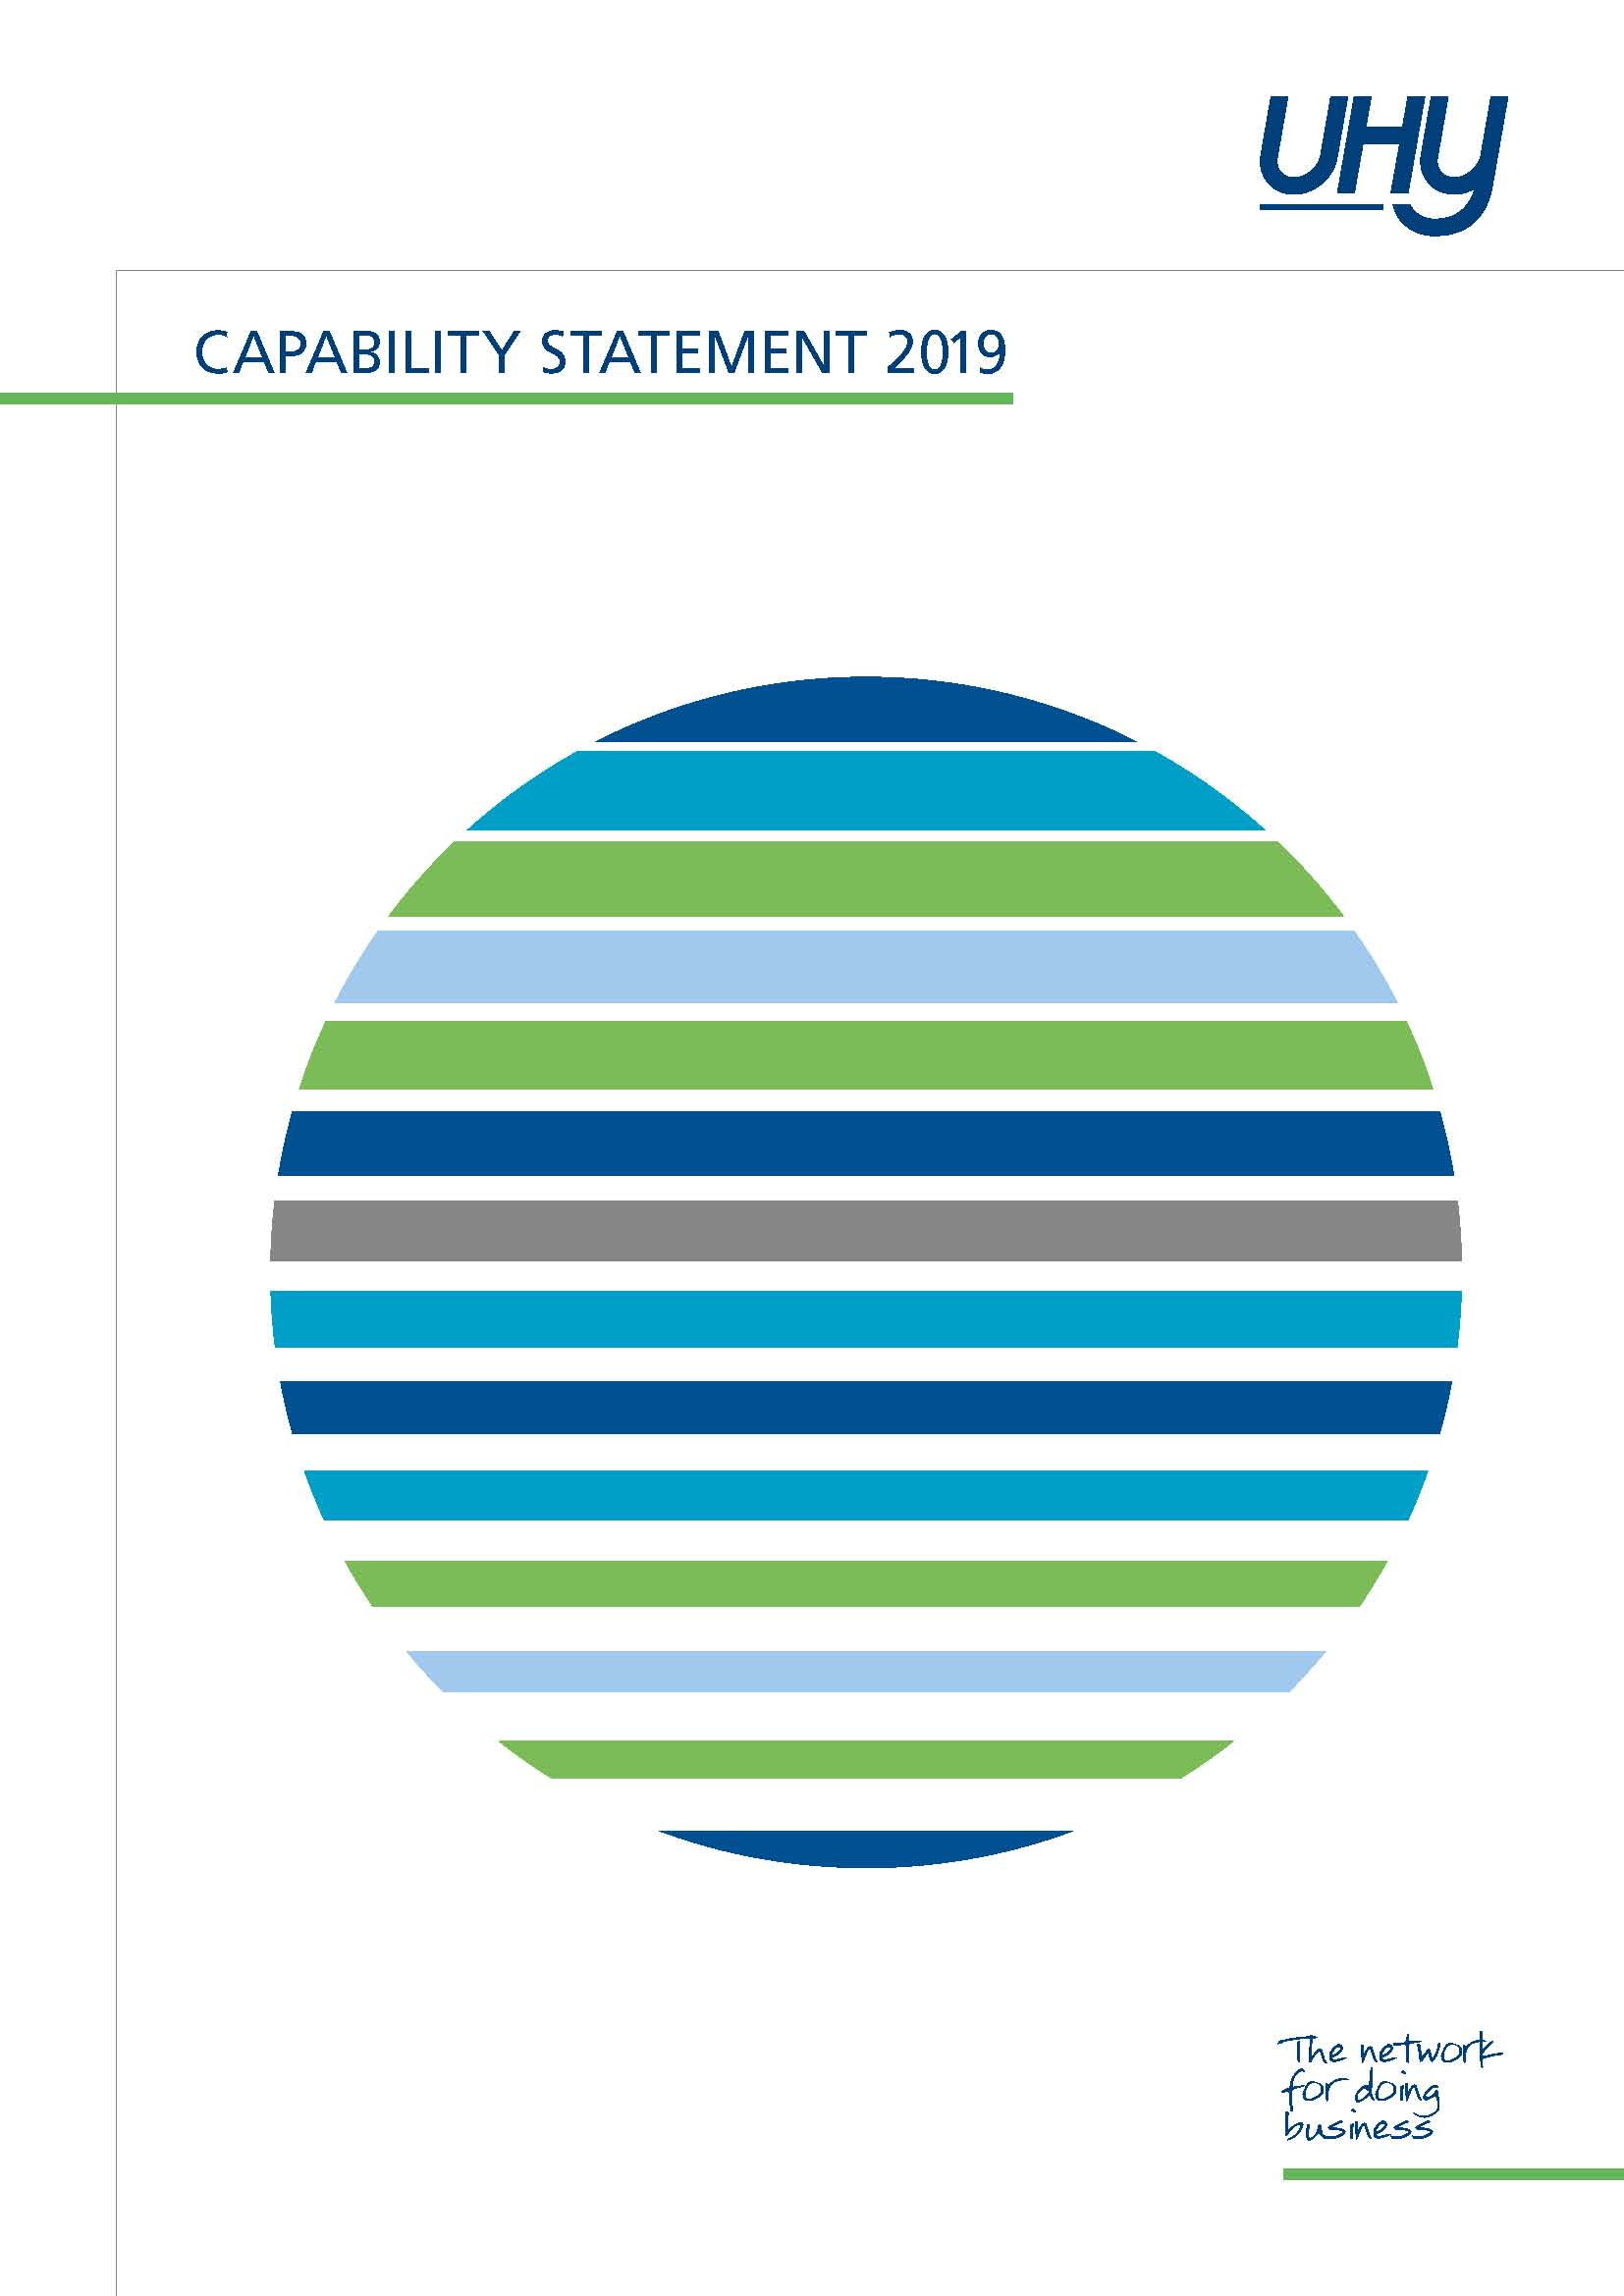 UHY Capability Statement 2019 Cover